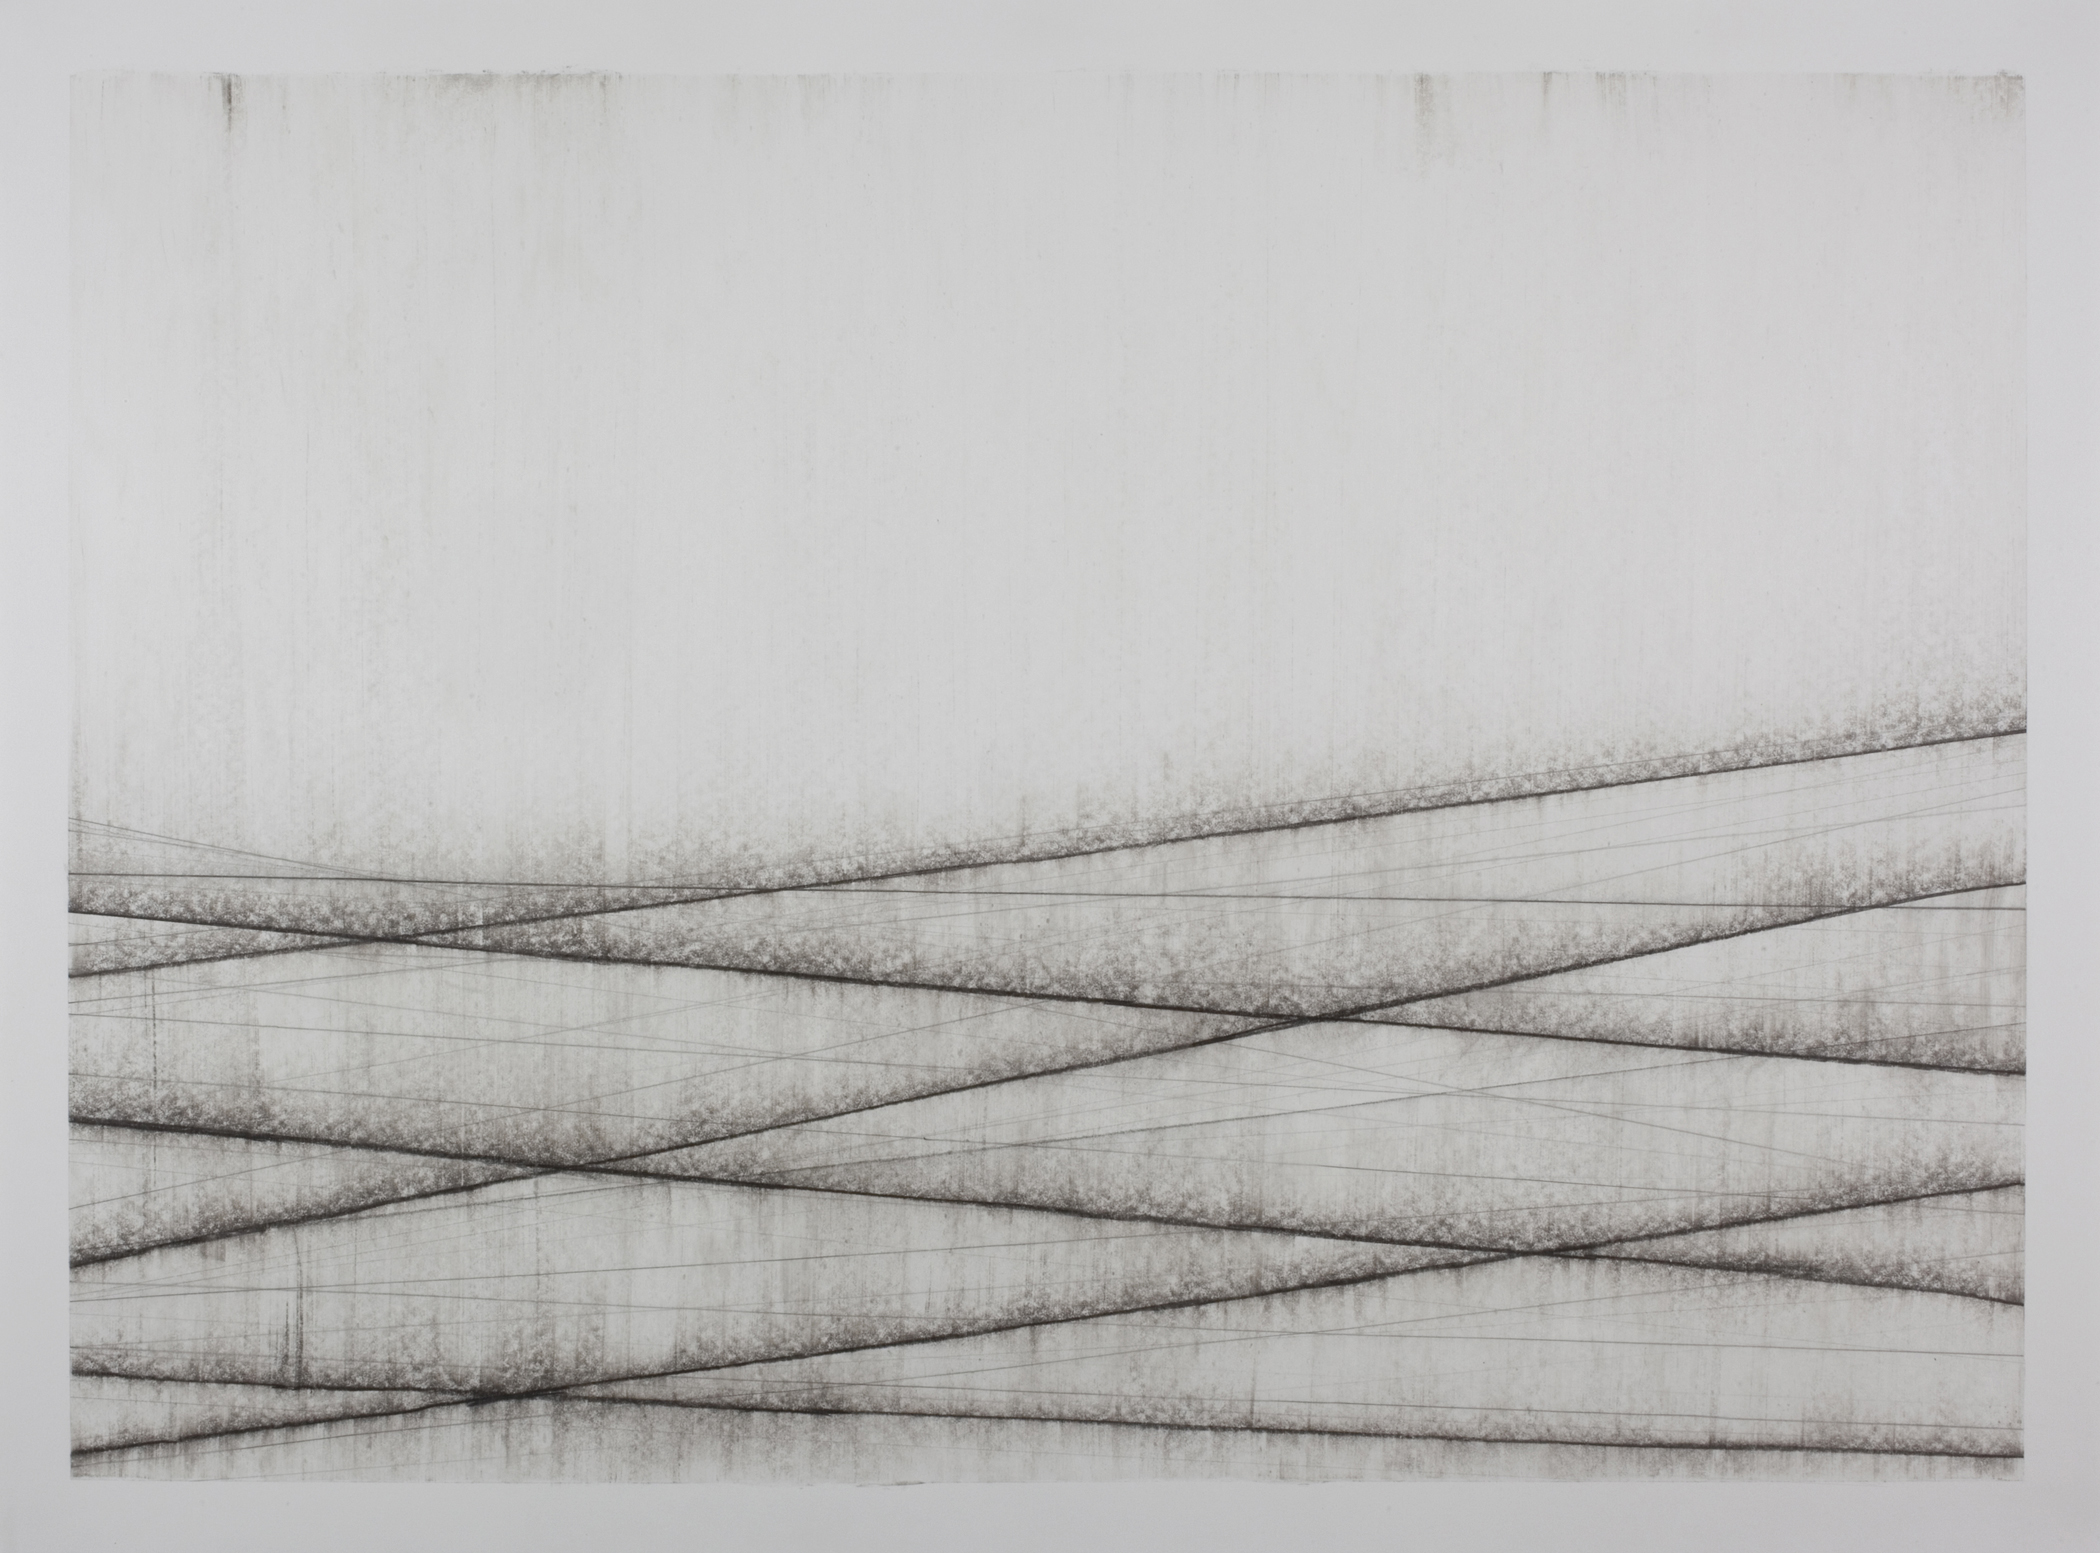 Rain Washed Horizon, 2011, pencil on paper, 101 × 137 cm